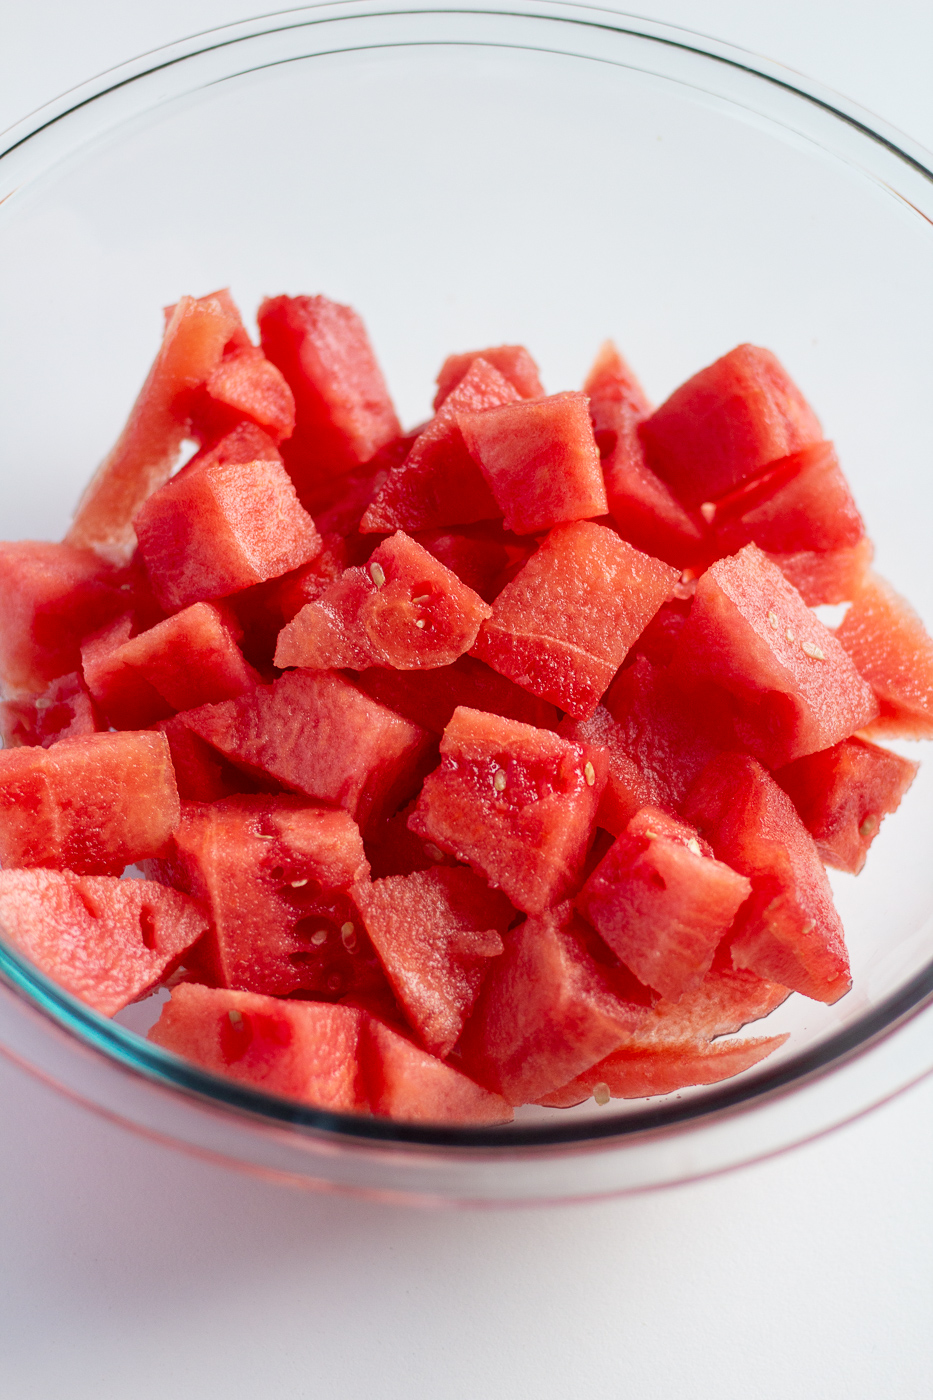 Meet Your Ingredients: Watermelon